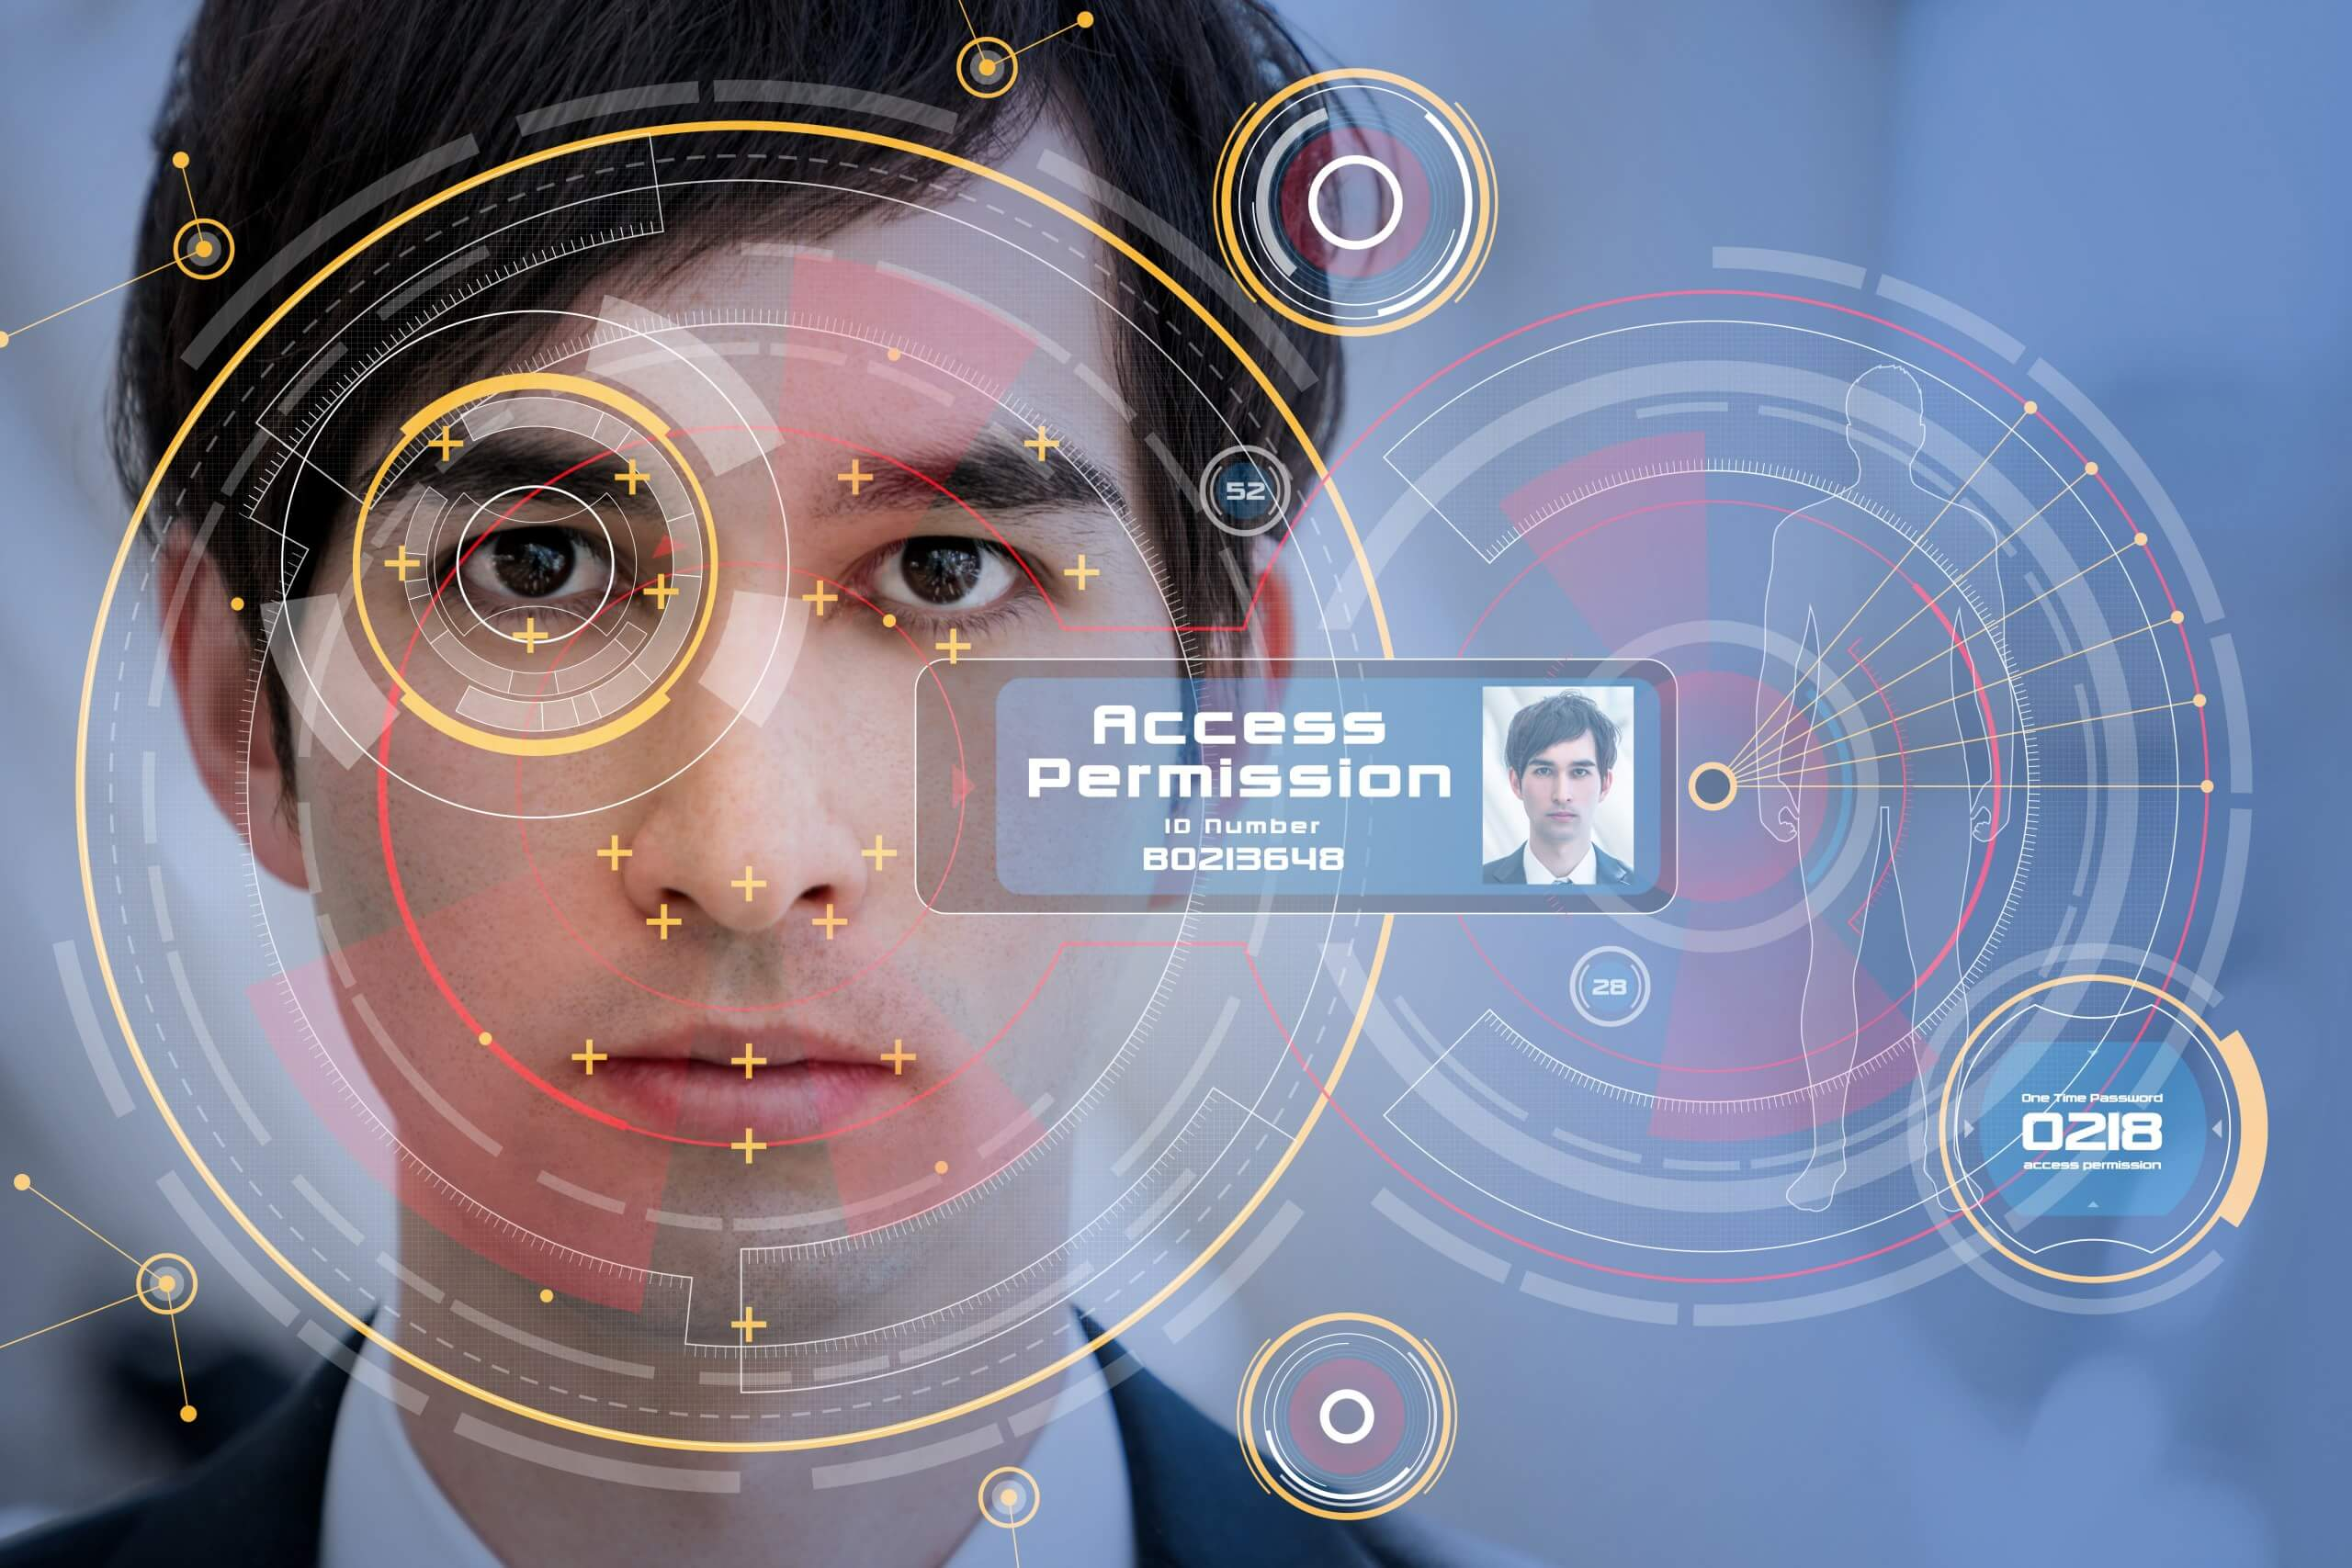 AWS Offers Support Facial Recognition Legislation